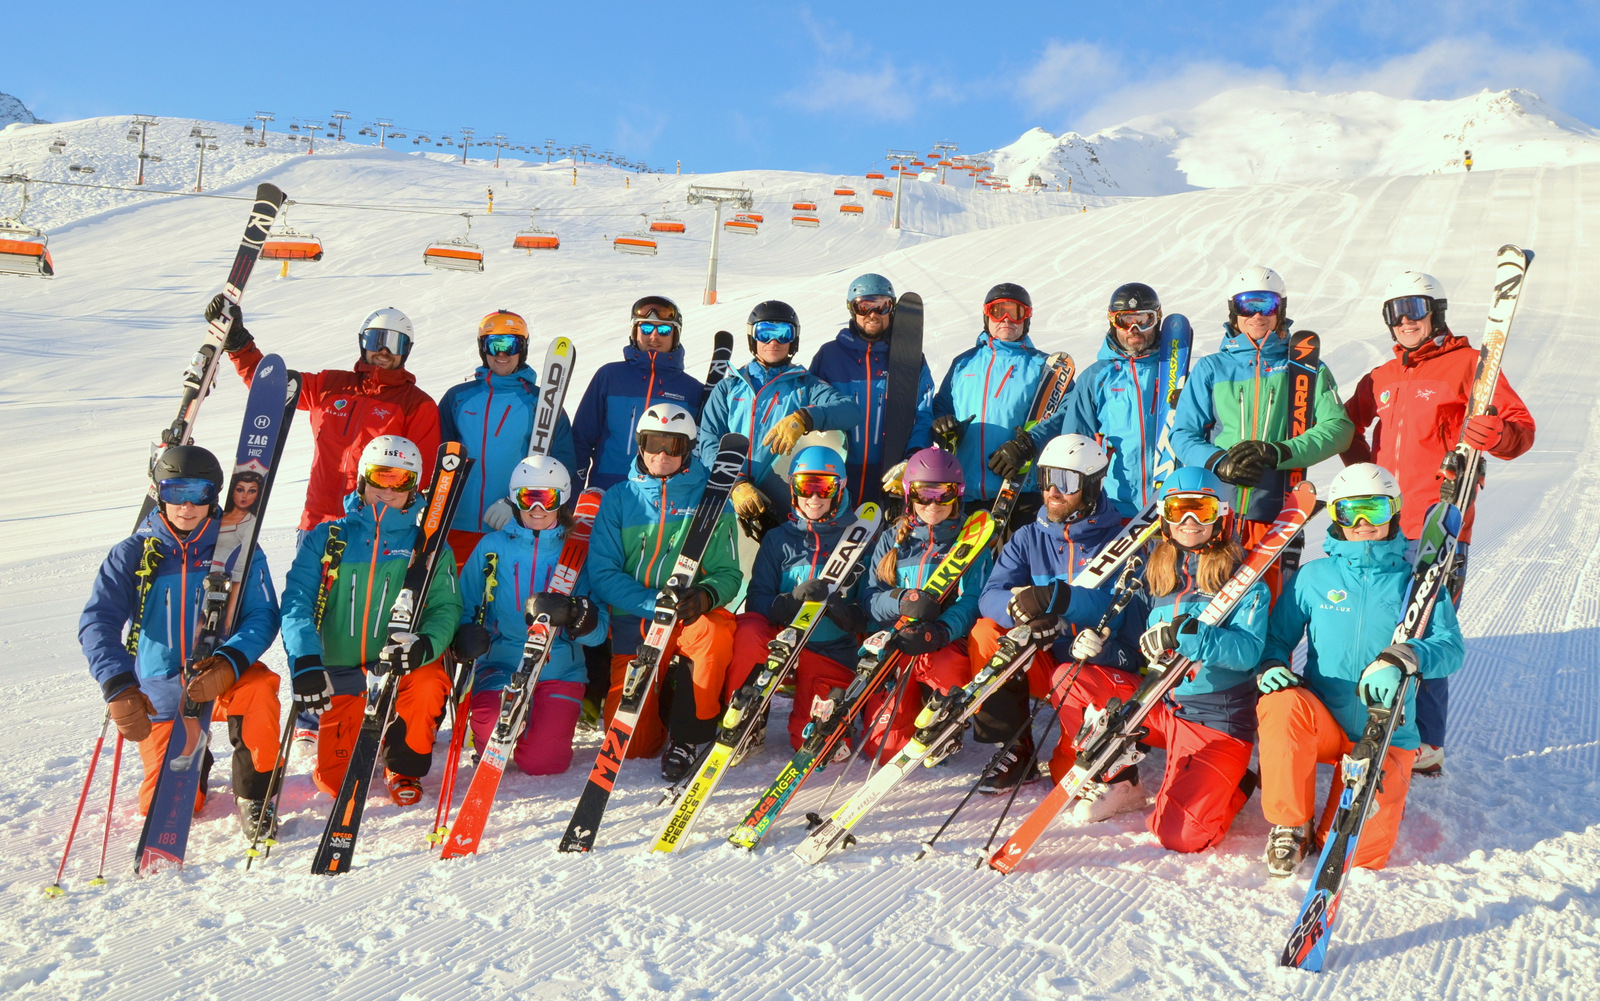 Skischool_Soelden